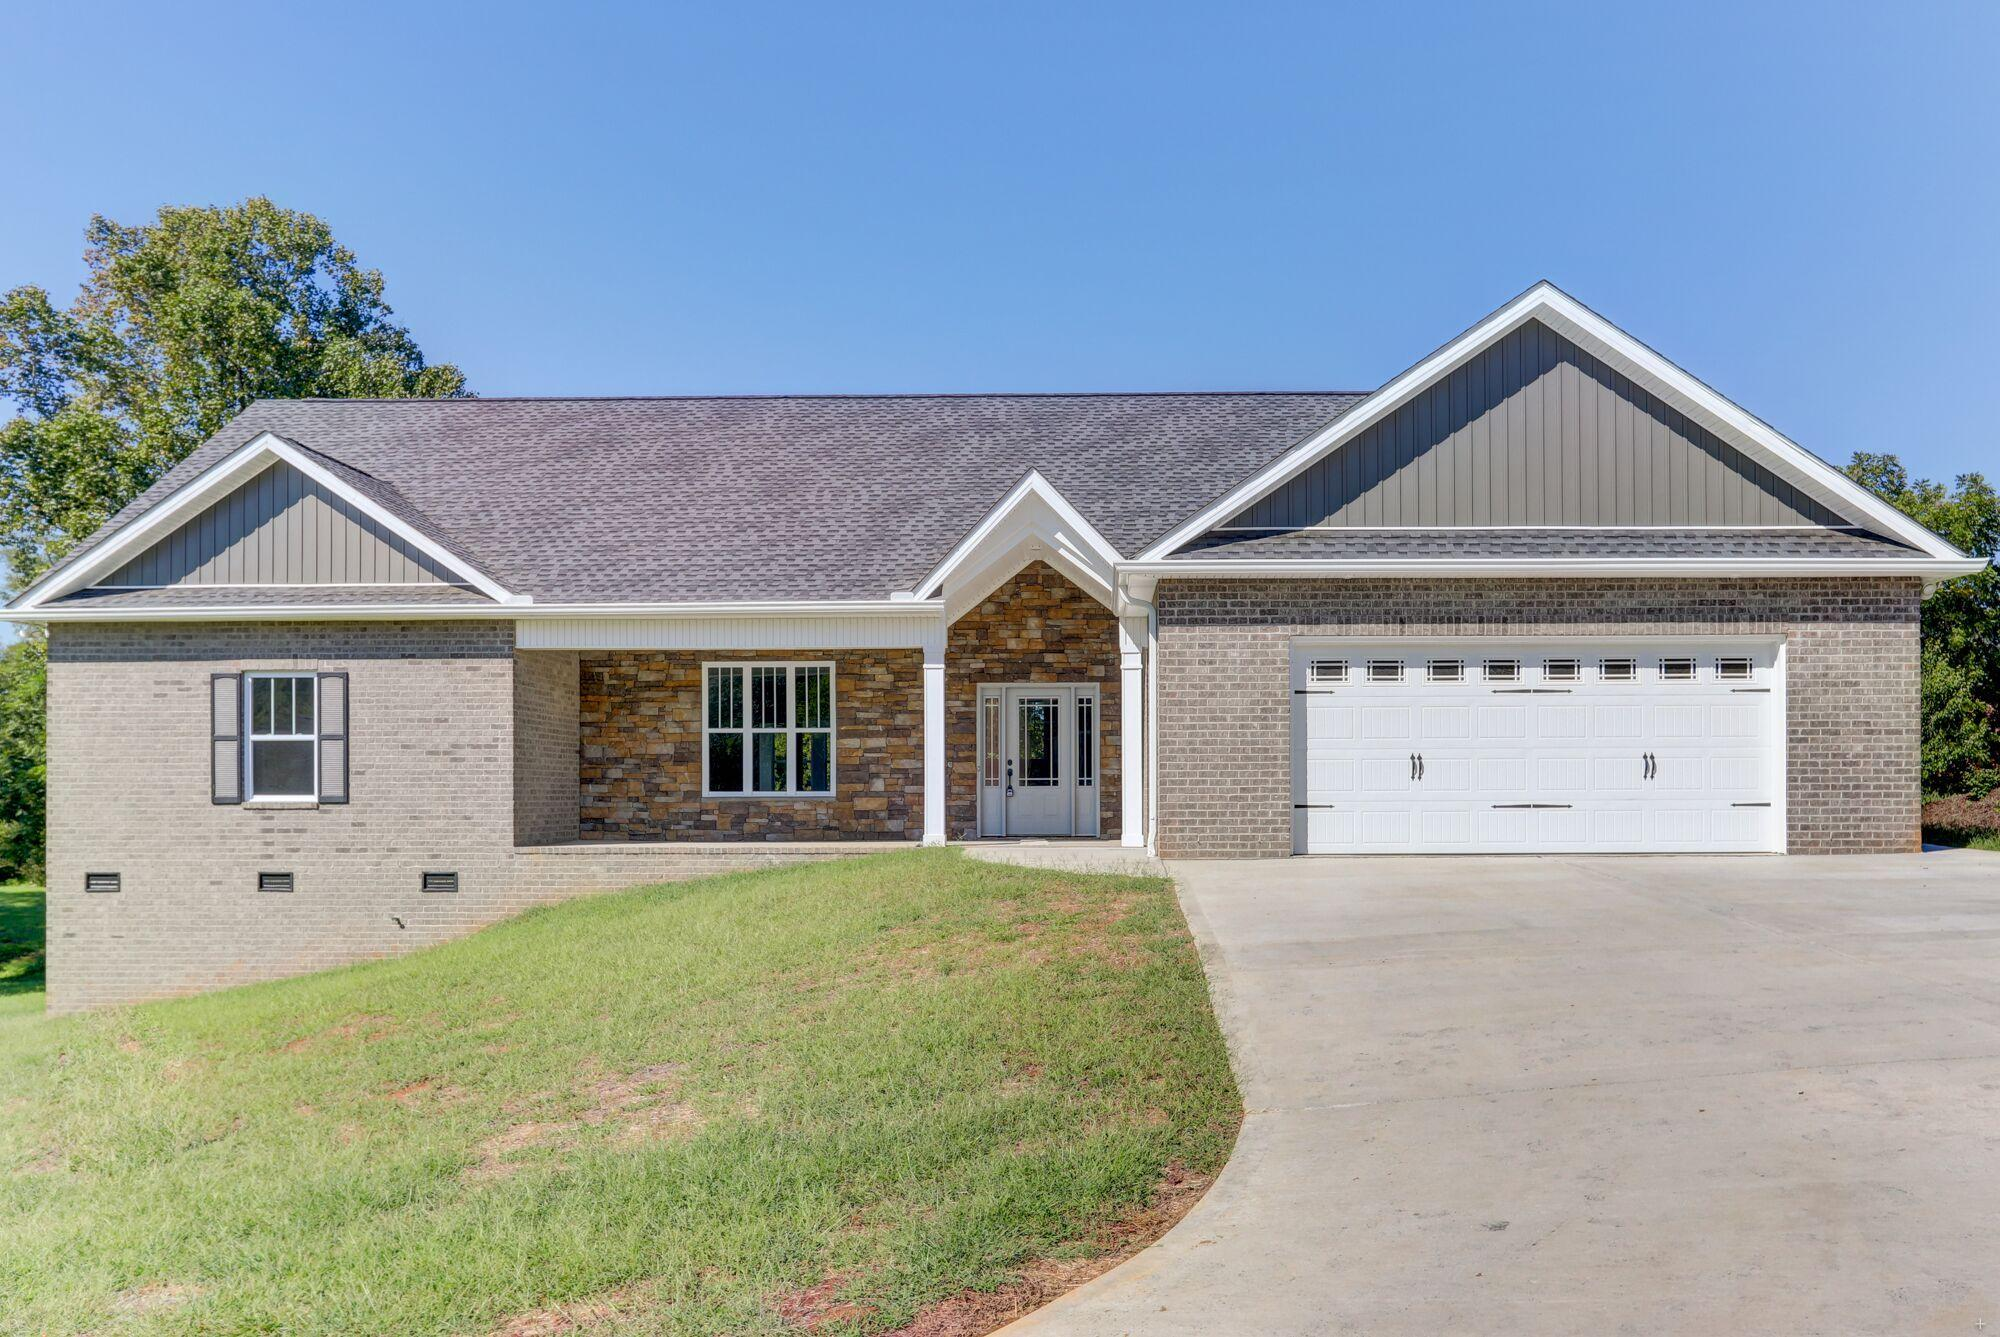 269 Mississippi Ave, Seymour, Tennessee 37865, 3 Bedrooms Bedrooms, ,2 BathroomsBathrooms,Single Family,For Sale,Mississippi,1047626